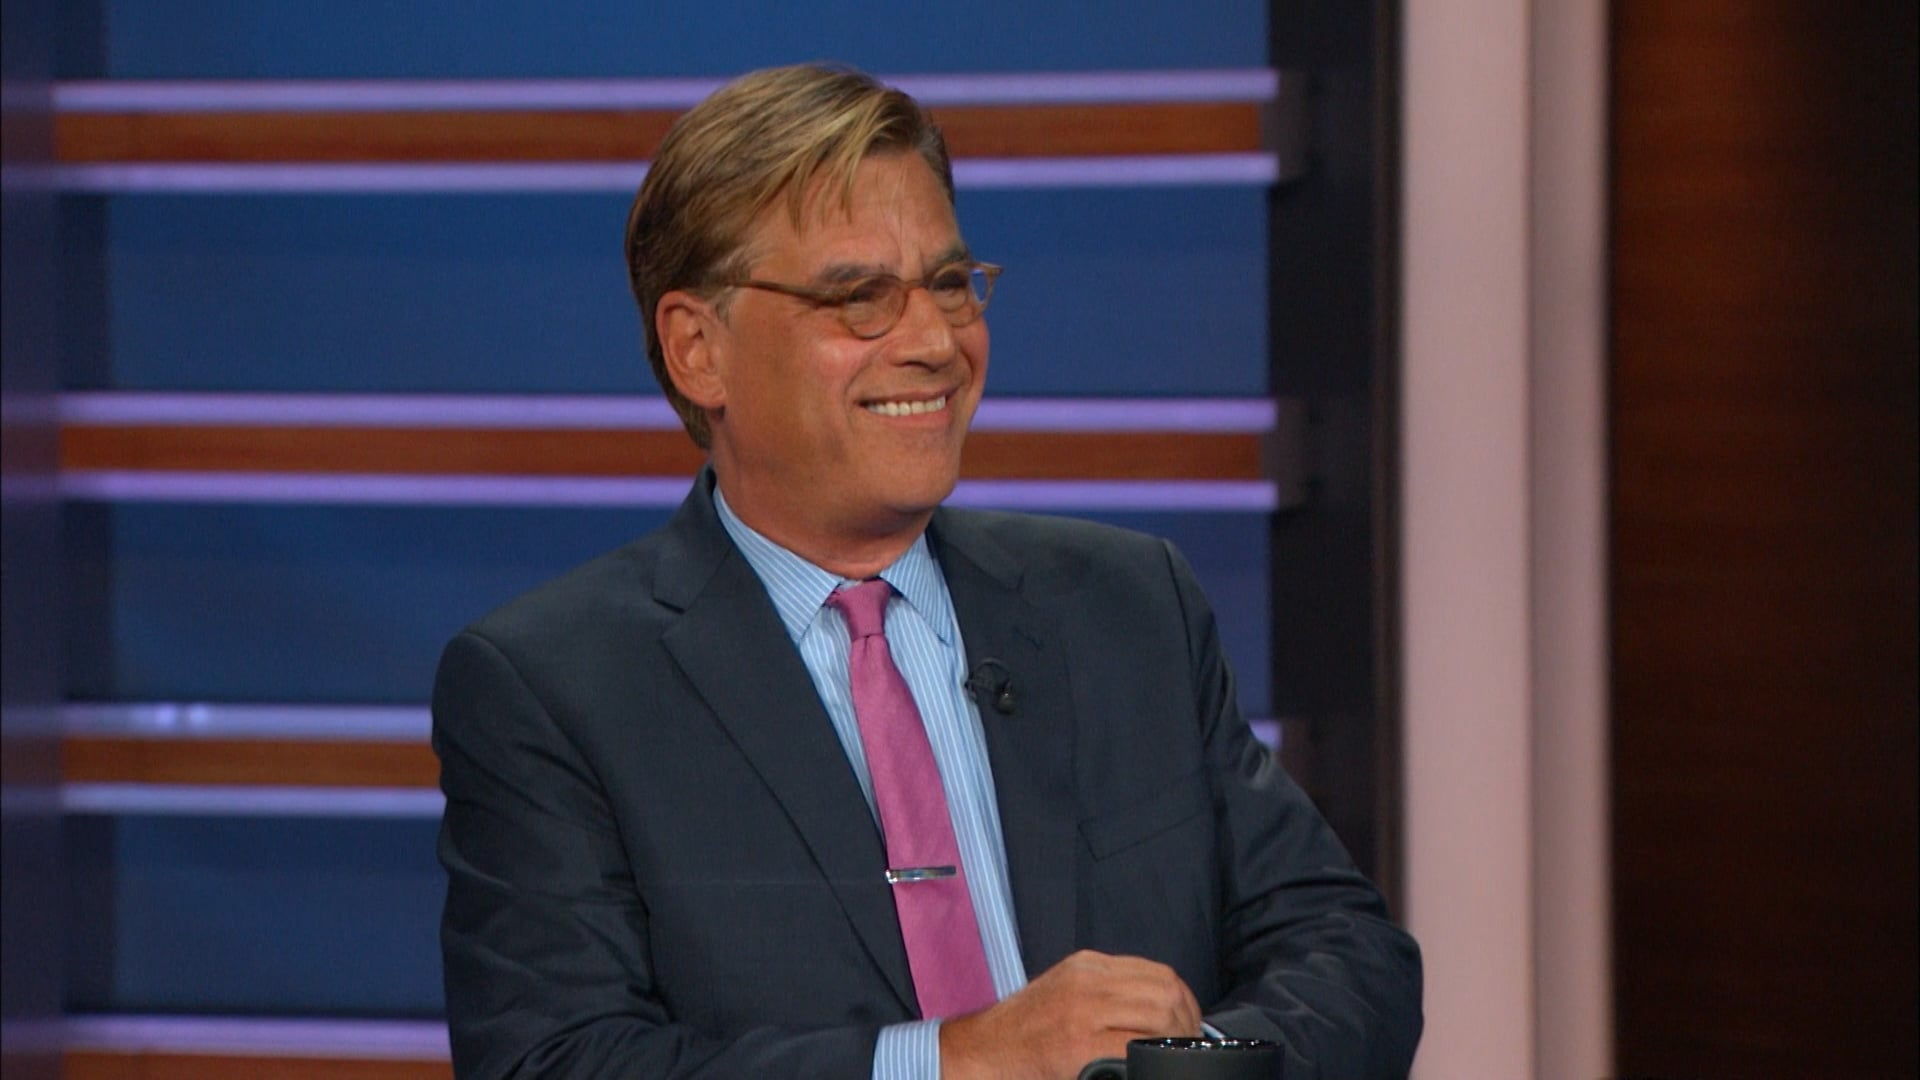 The Daily Show with Trevor Noah Season 21 :Episode 6  Aaron Sorkin